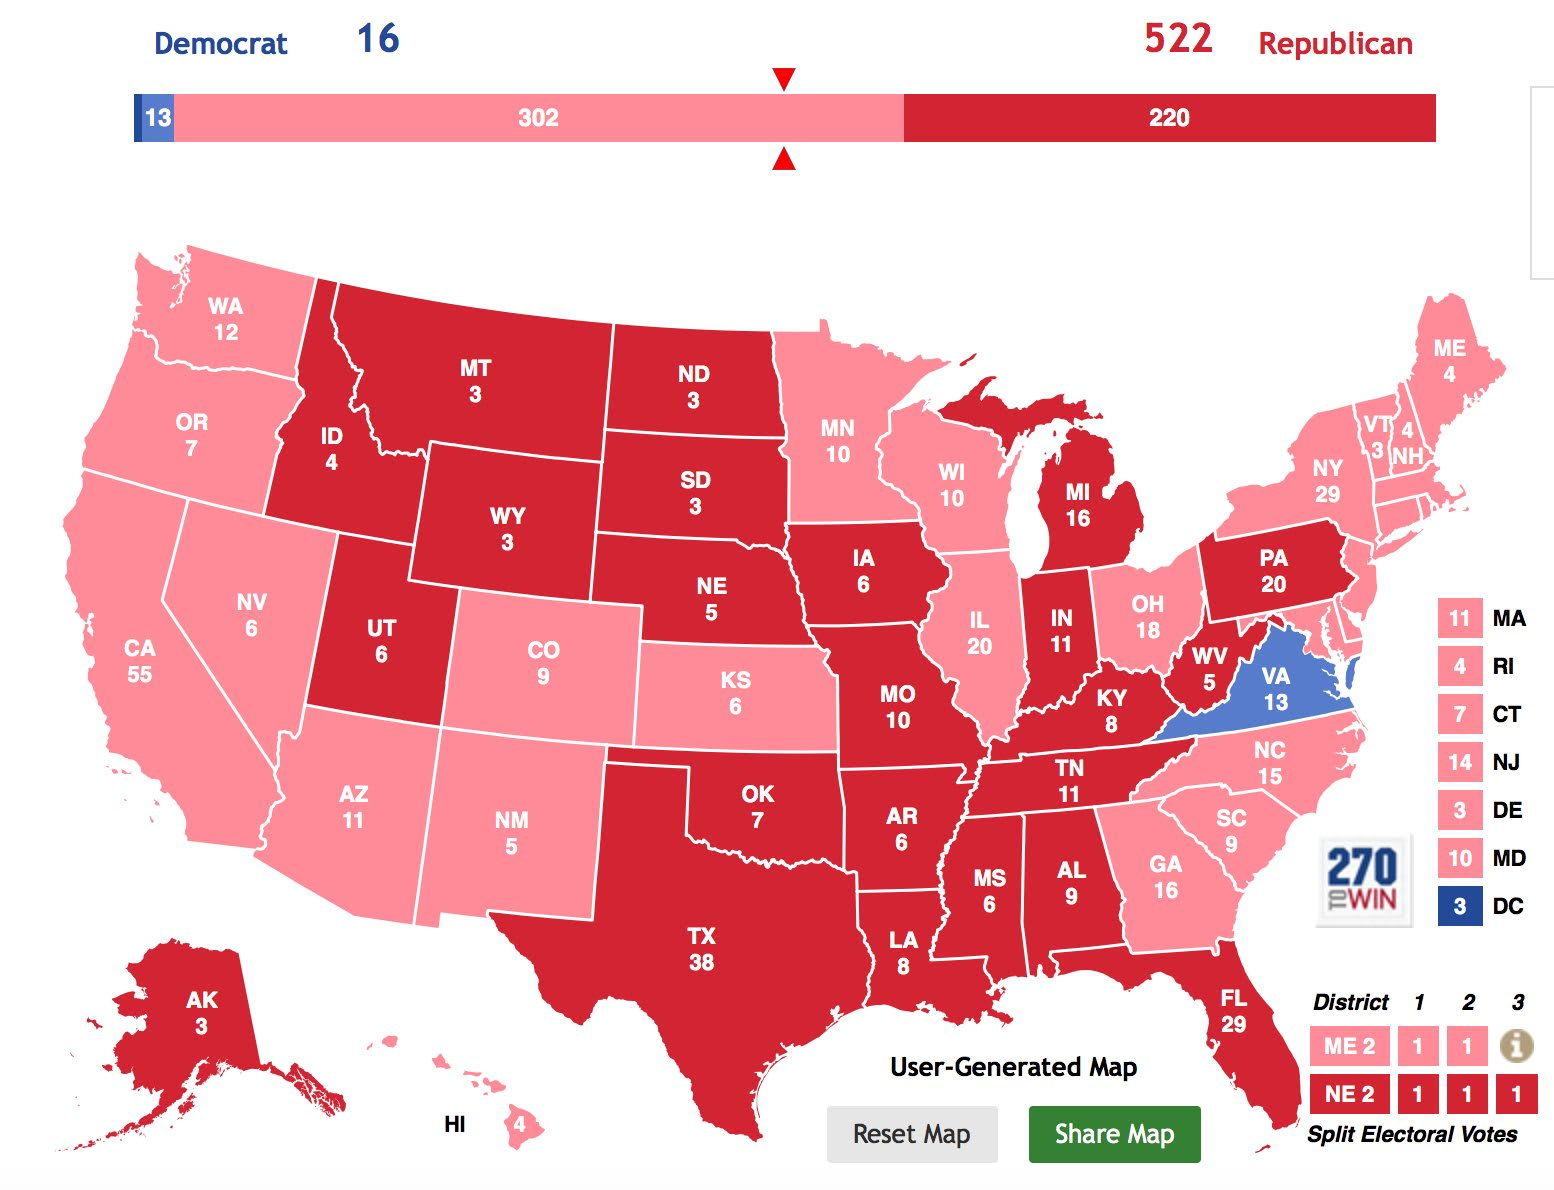 Borepatch: Election 2020 prediction: Trump 522, Whoever 16